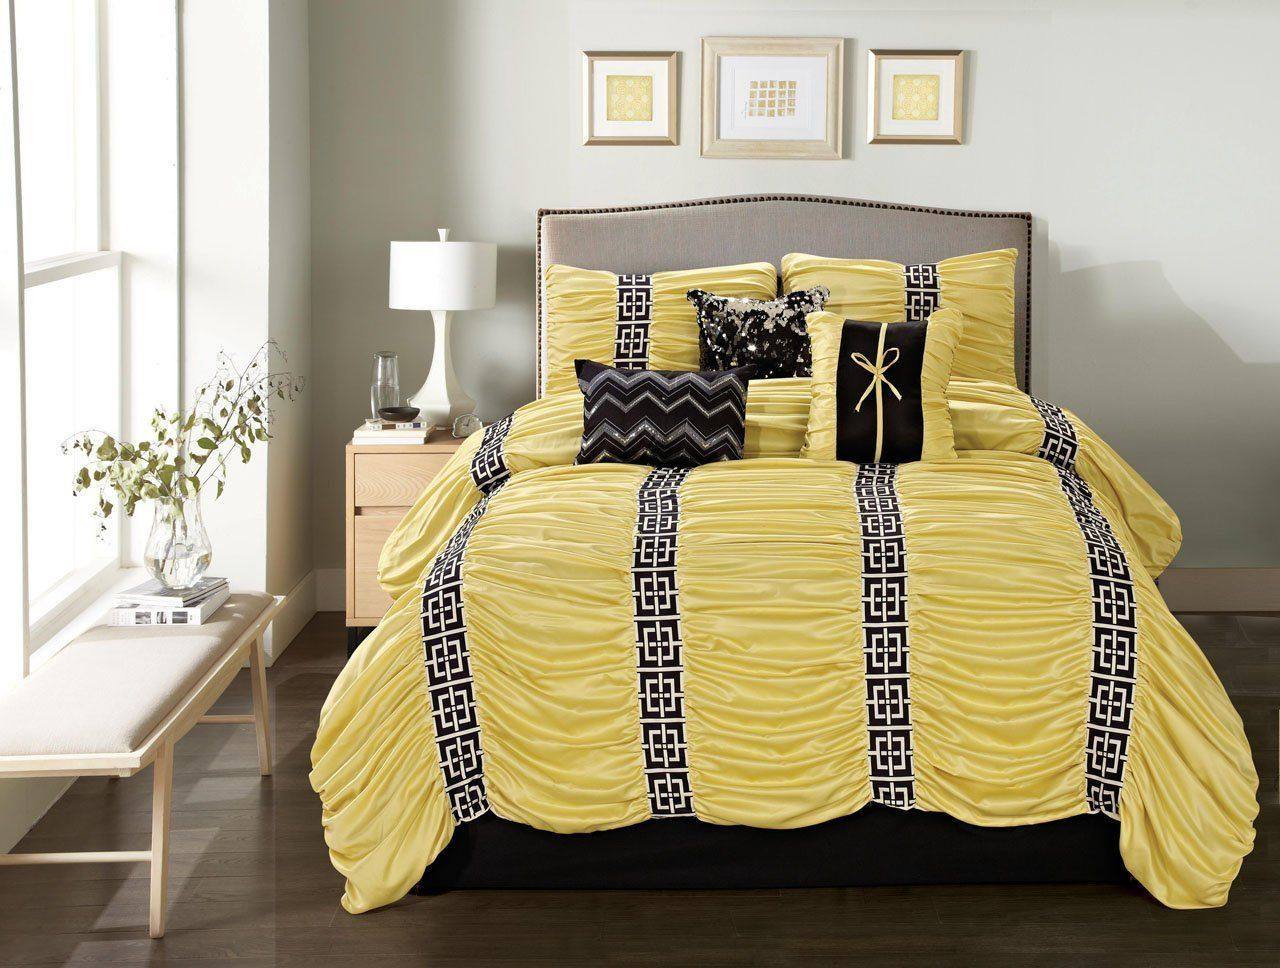 All Bedding Sets Yellow And Black Black Comforter Sets